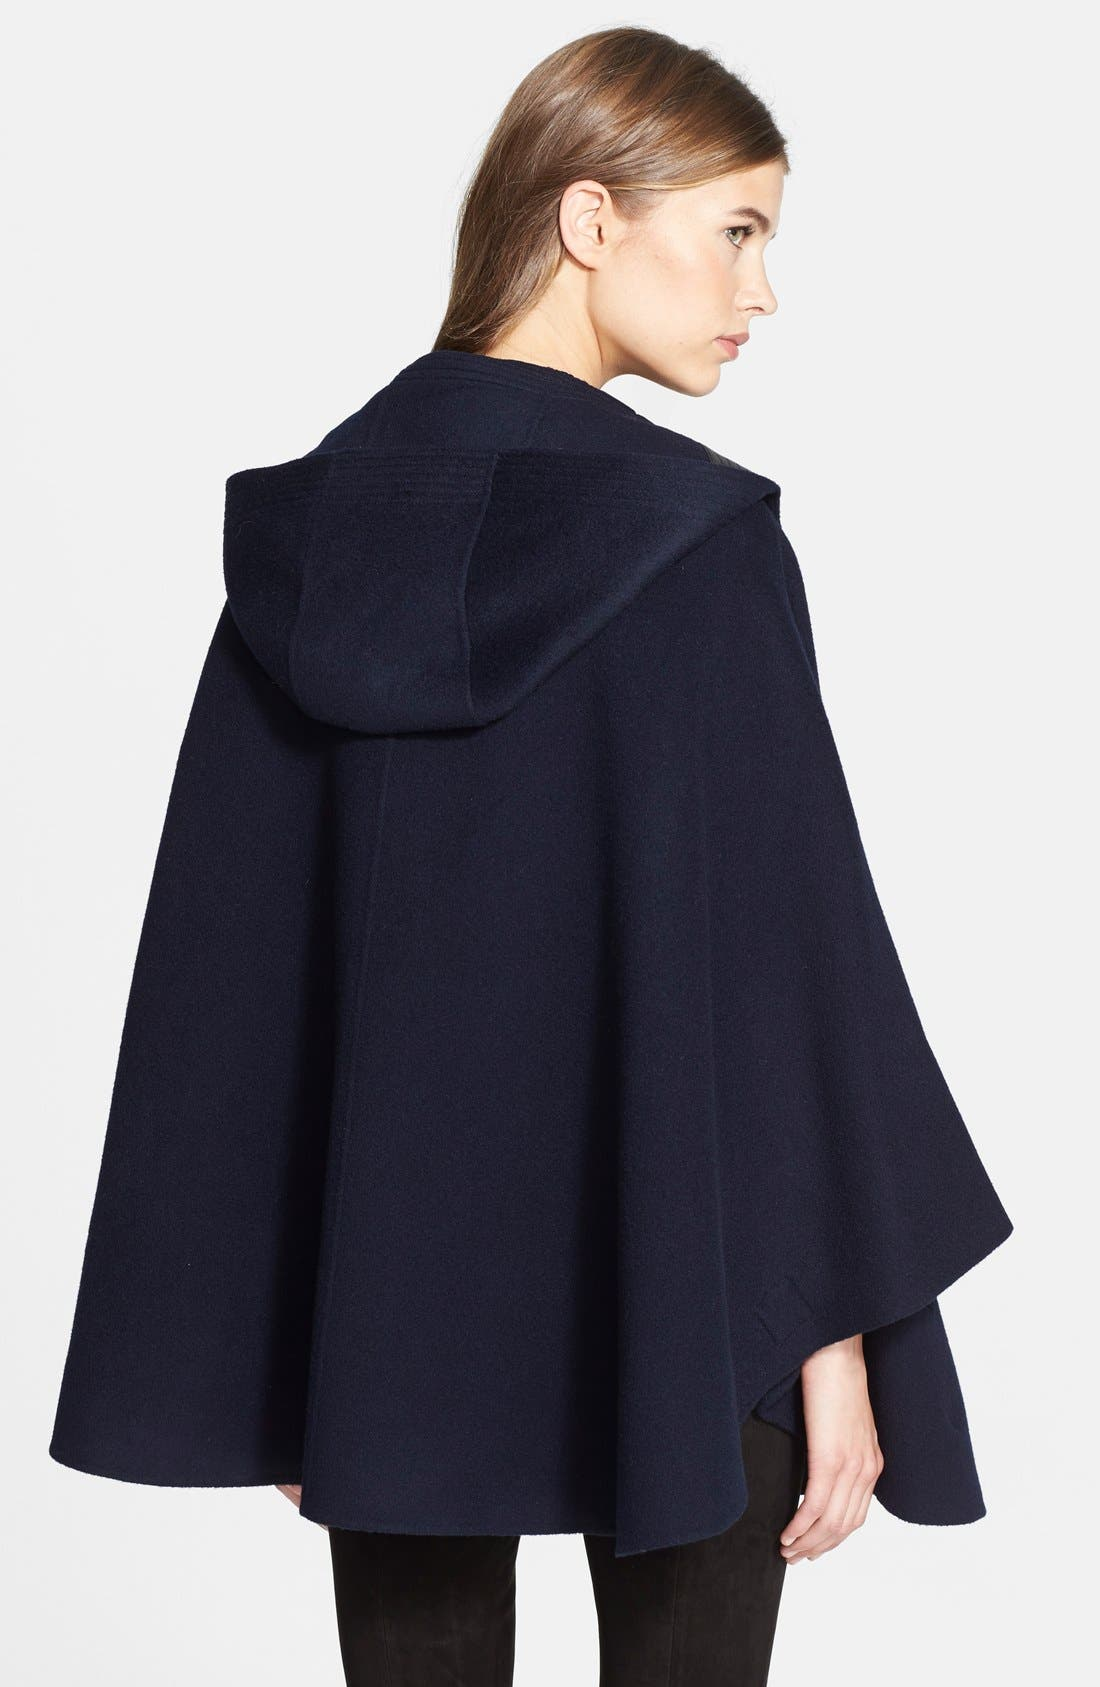 Hooded Wool Blend Cape with Leather Trim,                             Alternate thumbnail 5, color,                             470